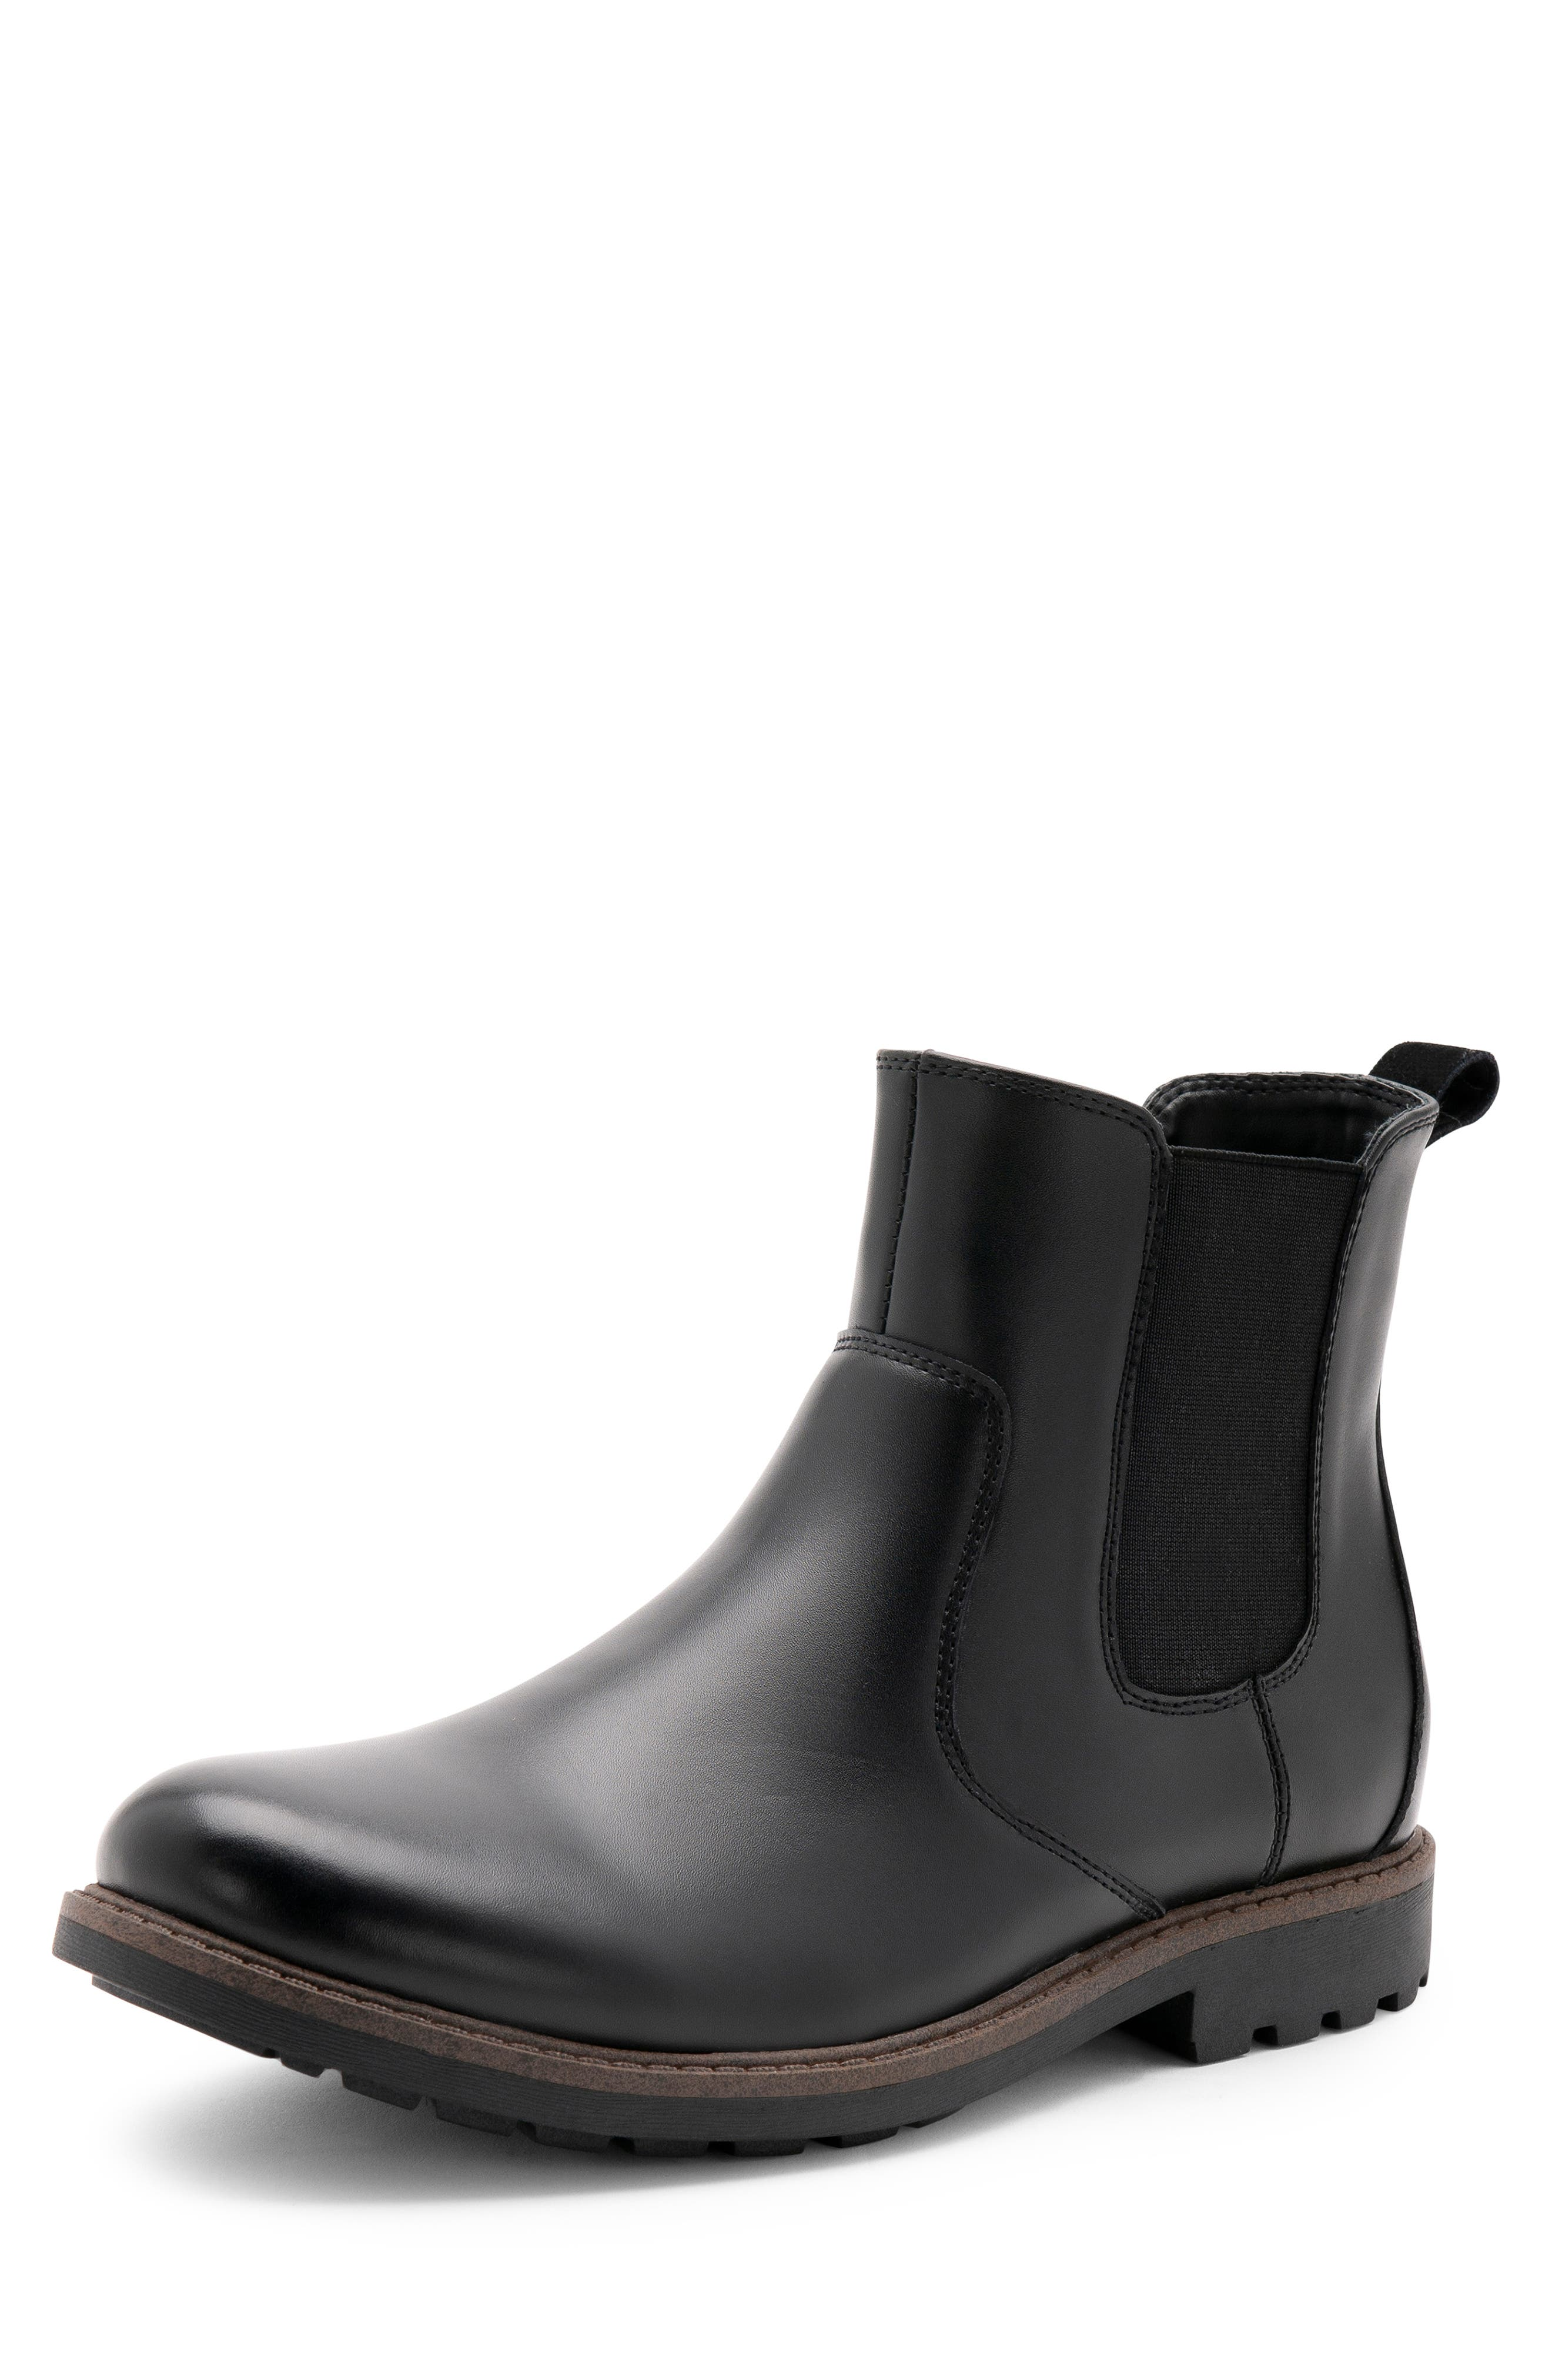 BLONDO, Shadow Waterproof Chelsea Boot, Alternate thumbnail 7, color, BLACK LEATHER